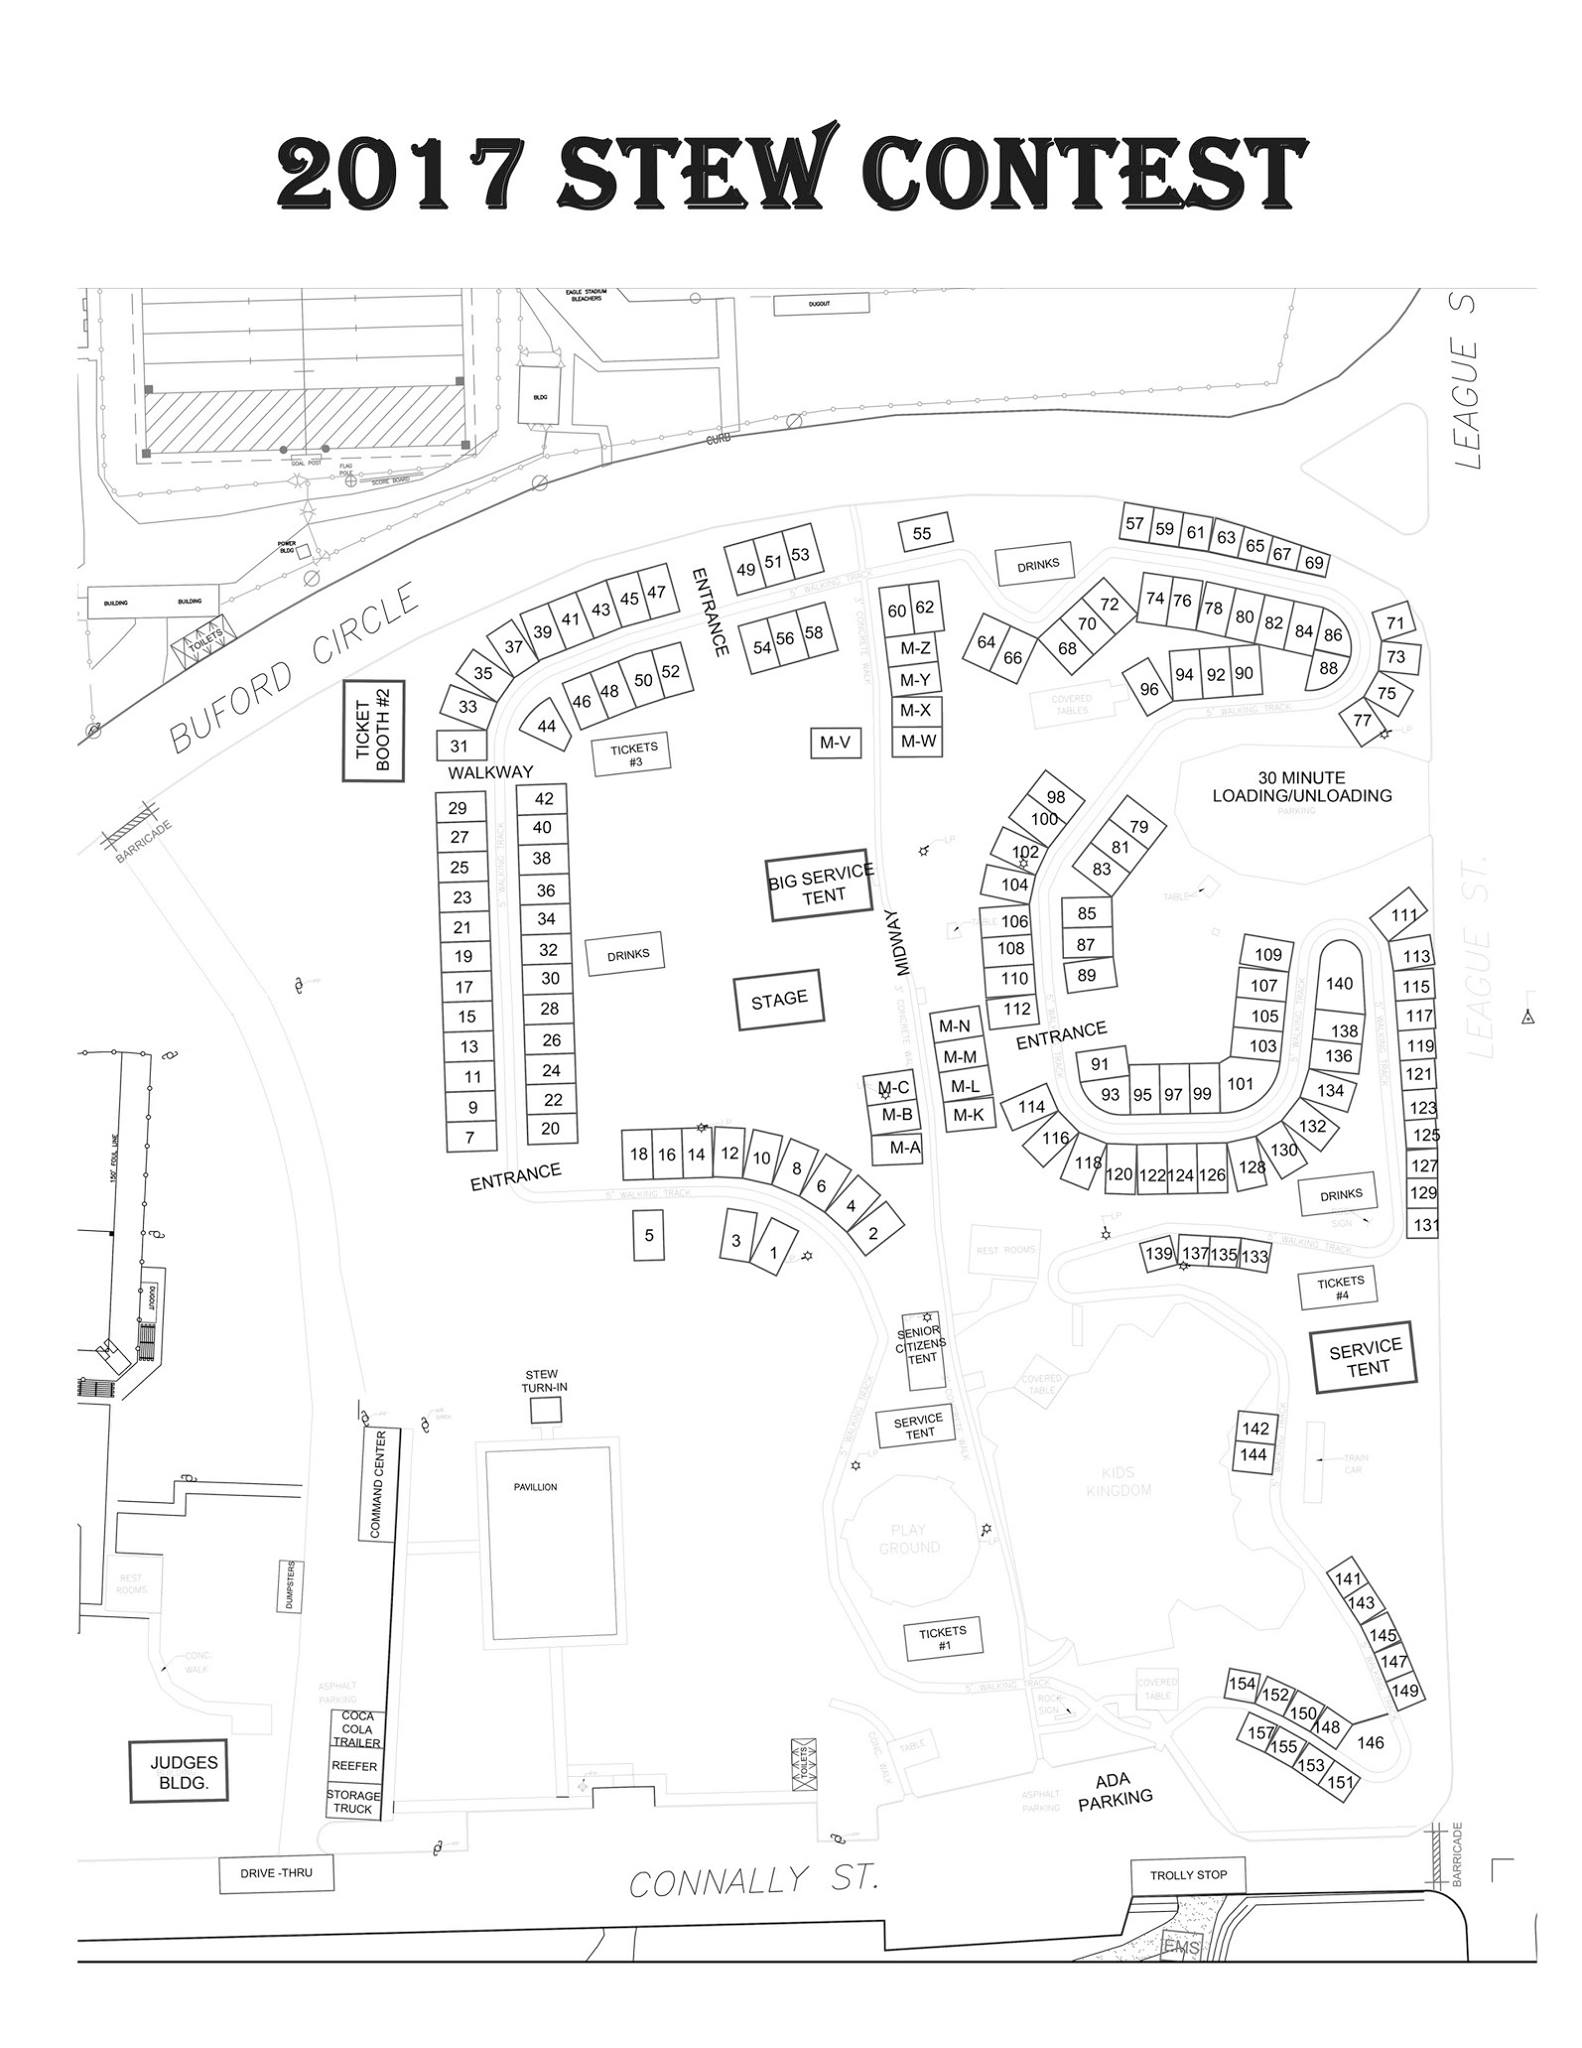 48th Annual Hopkins County Stew Contest Site Map